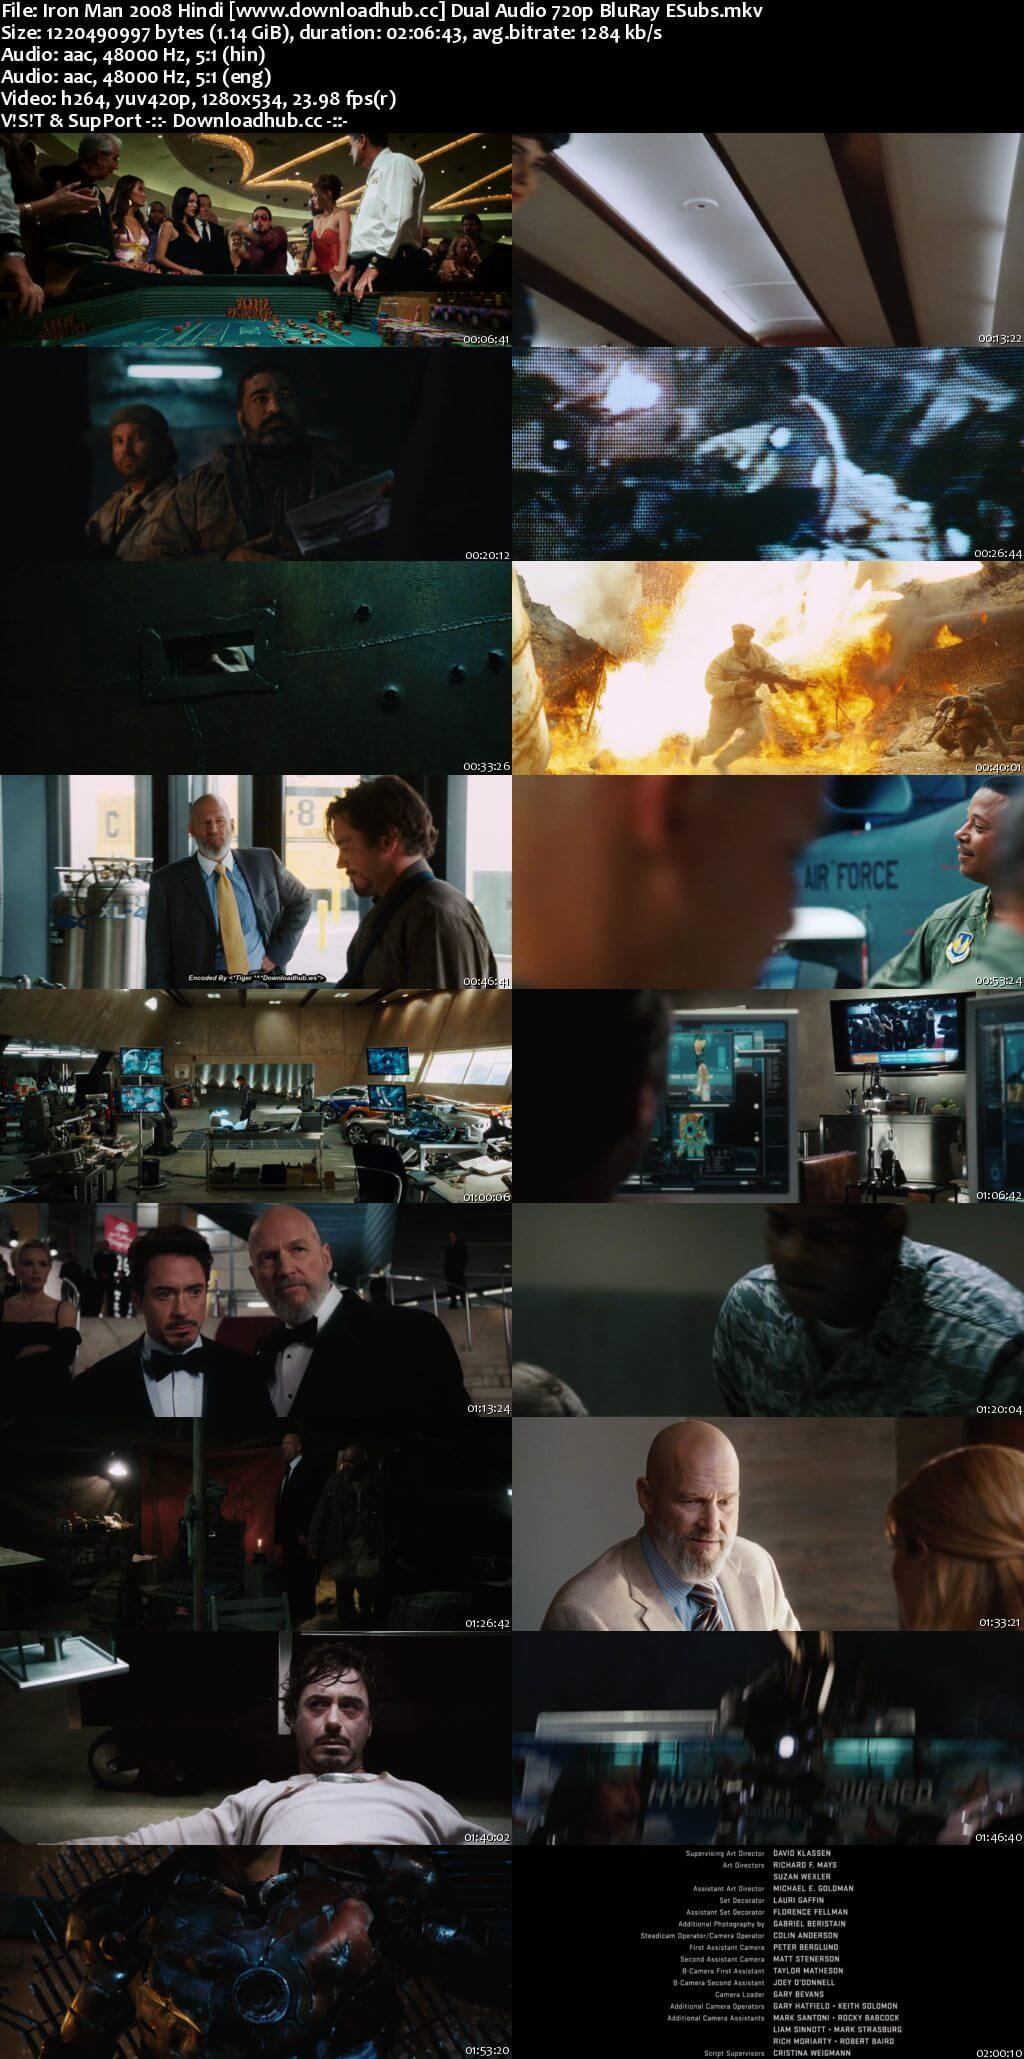 Iron Man 2008 Hindi ORG Dual Audio 720p BluRay ESubs